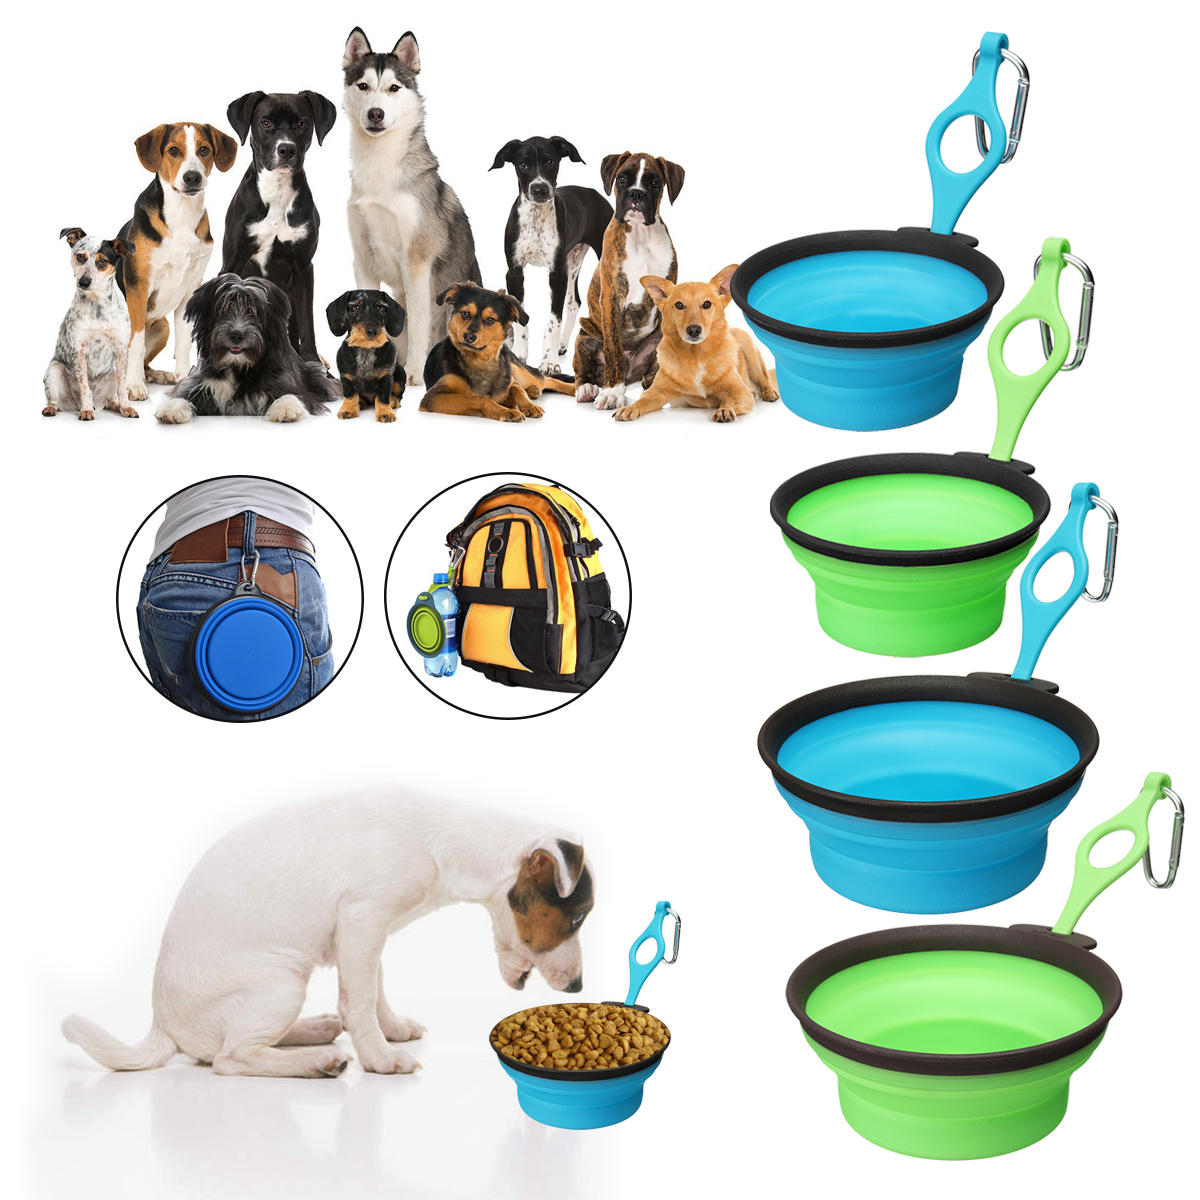 Pet Supplies Pet Dog Cat Automatic Food Supply 2 In 1 Bowl Bottle Drinking Feeding Bowls Tall Traveling